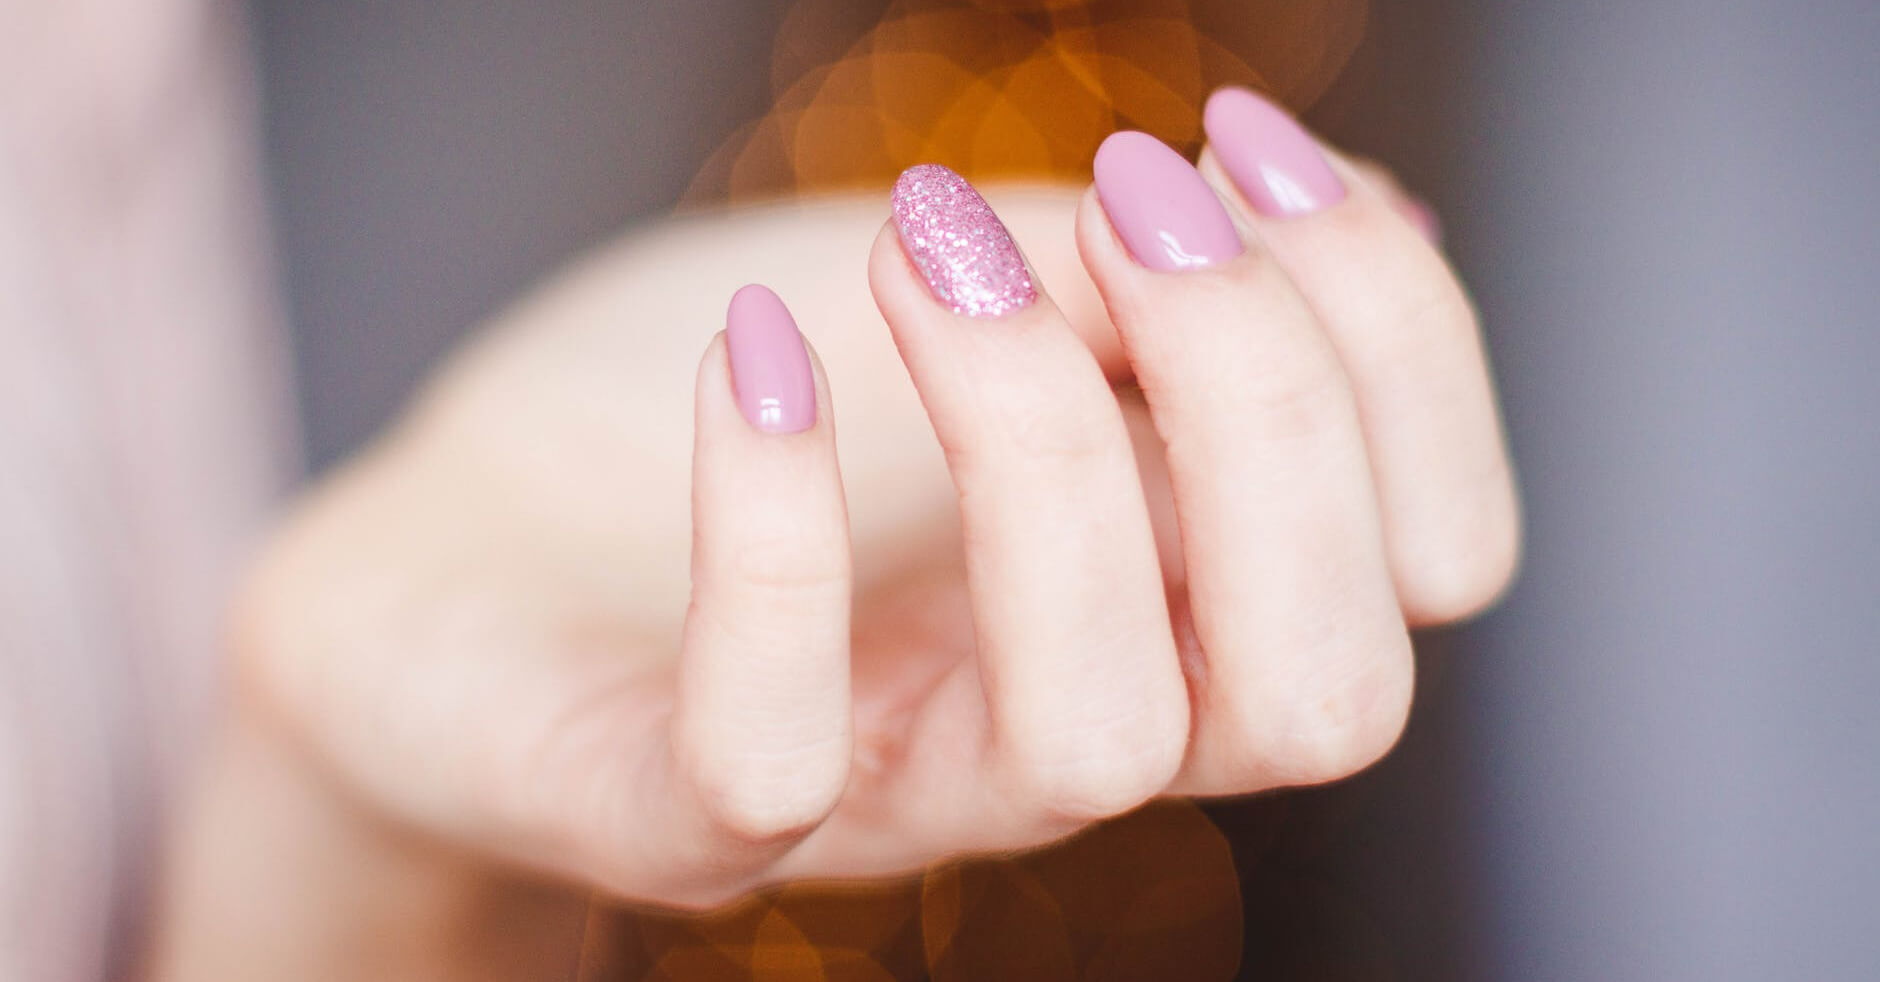 How To Give Yourself A Manicure - Self Manicure At Home!